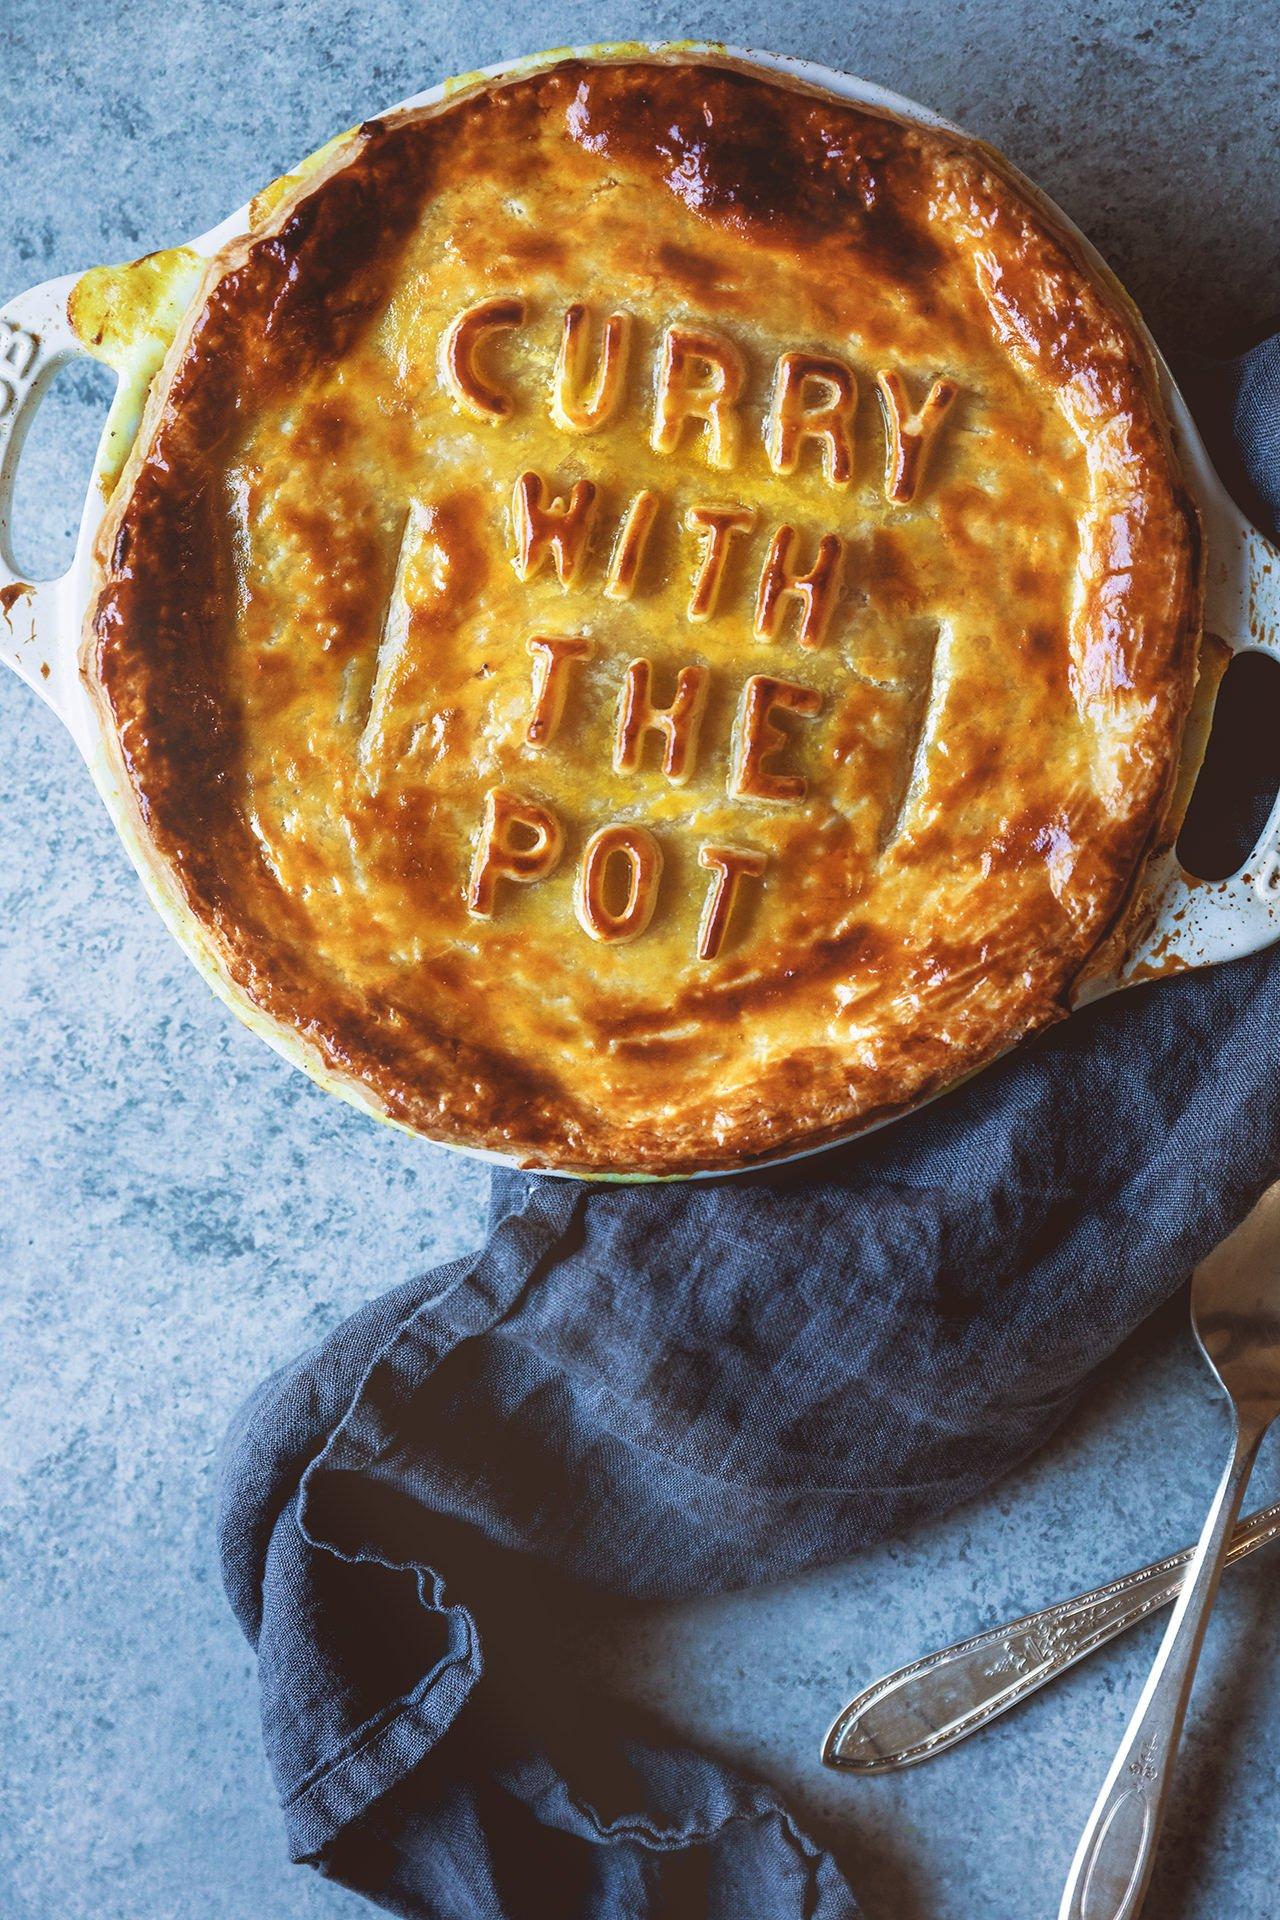 Curry Chicken Pot Pie | HonestlyYUM